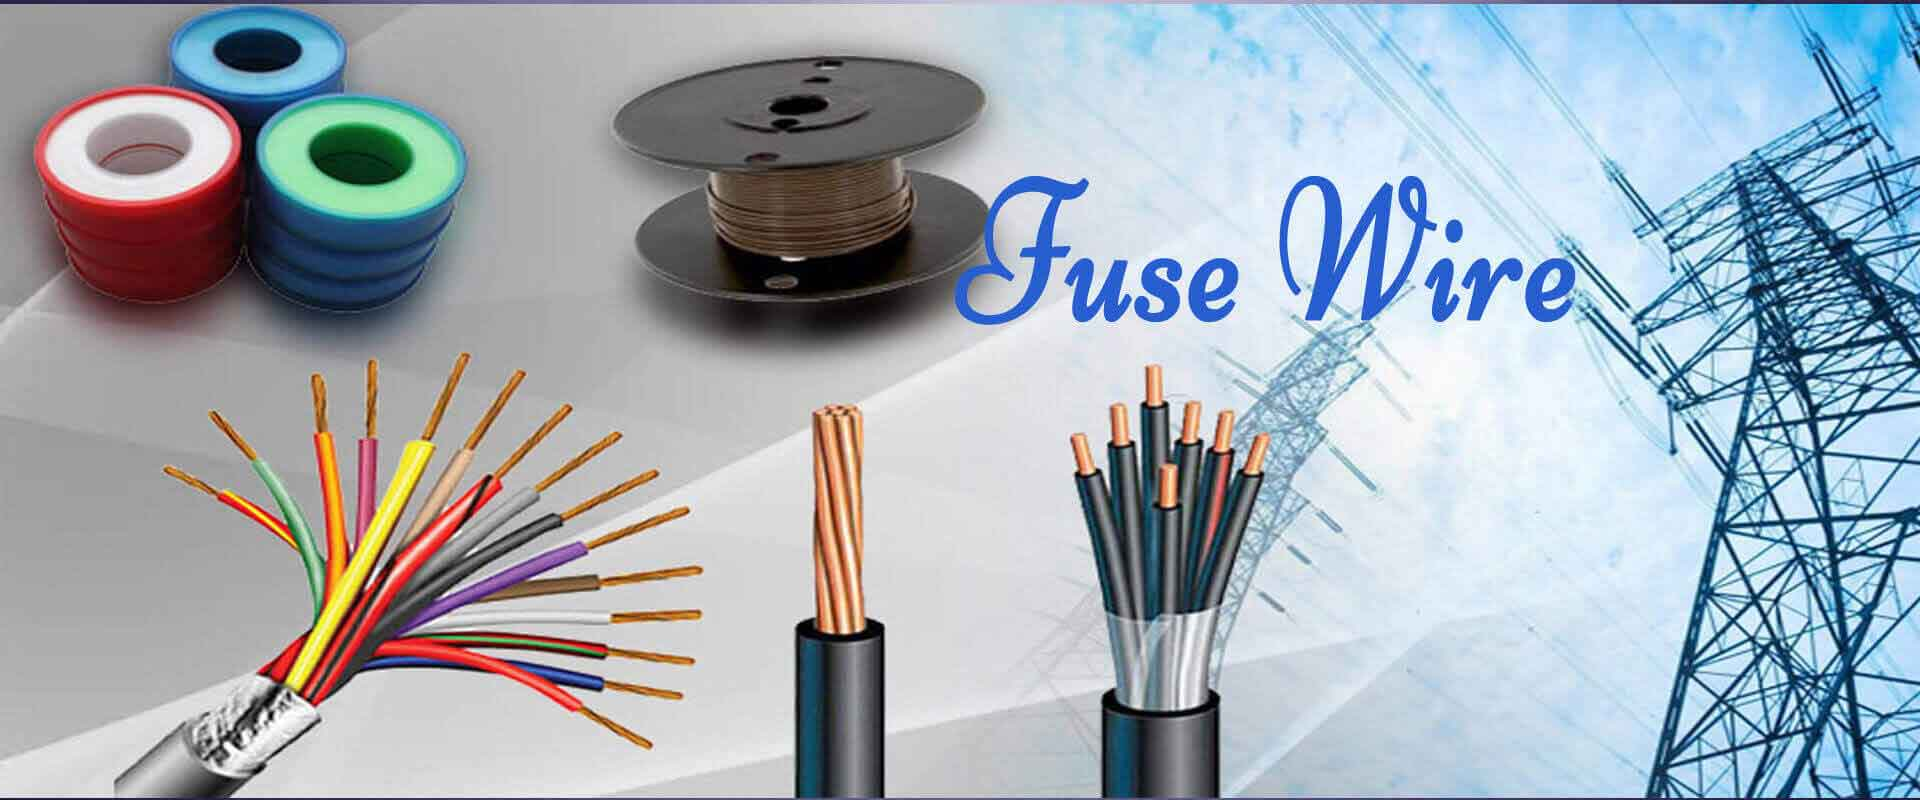 Silver Plated Copper Wire For Fuse In Vellore